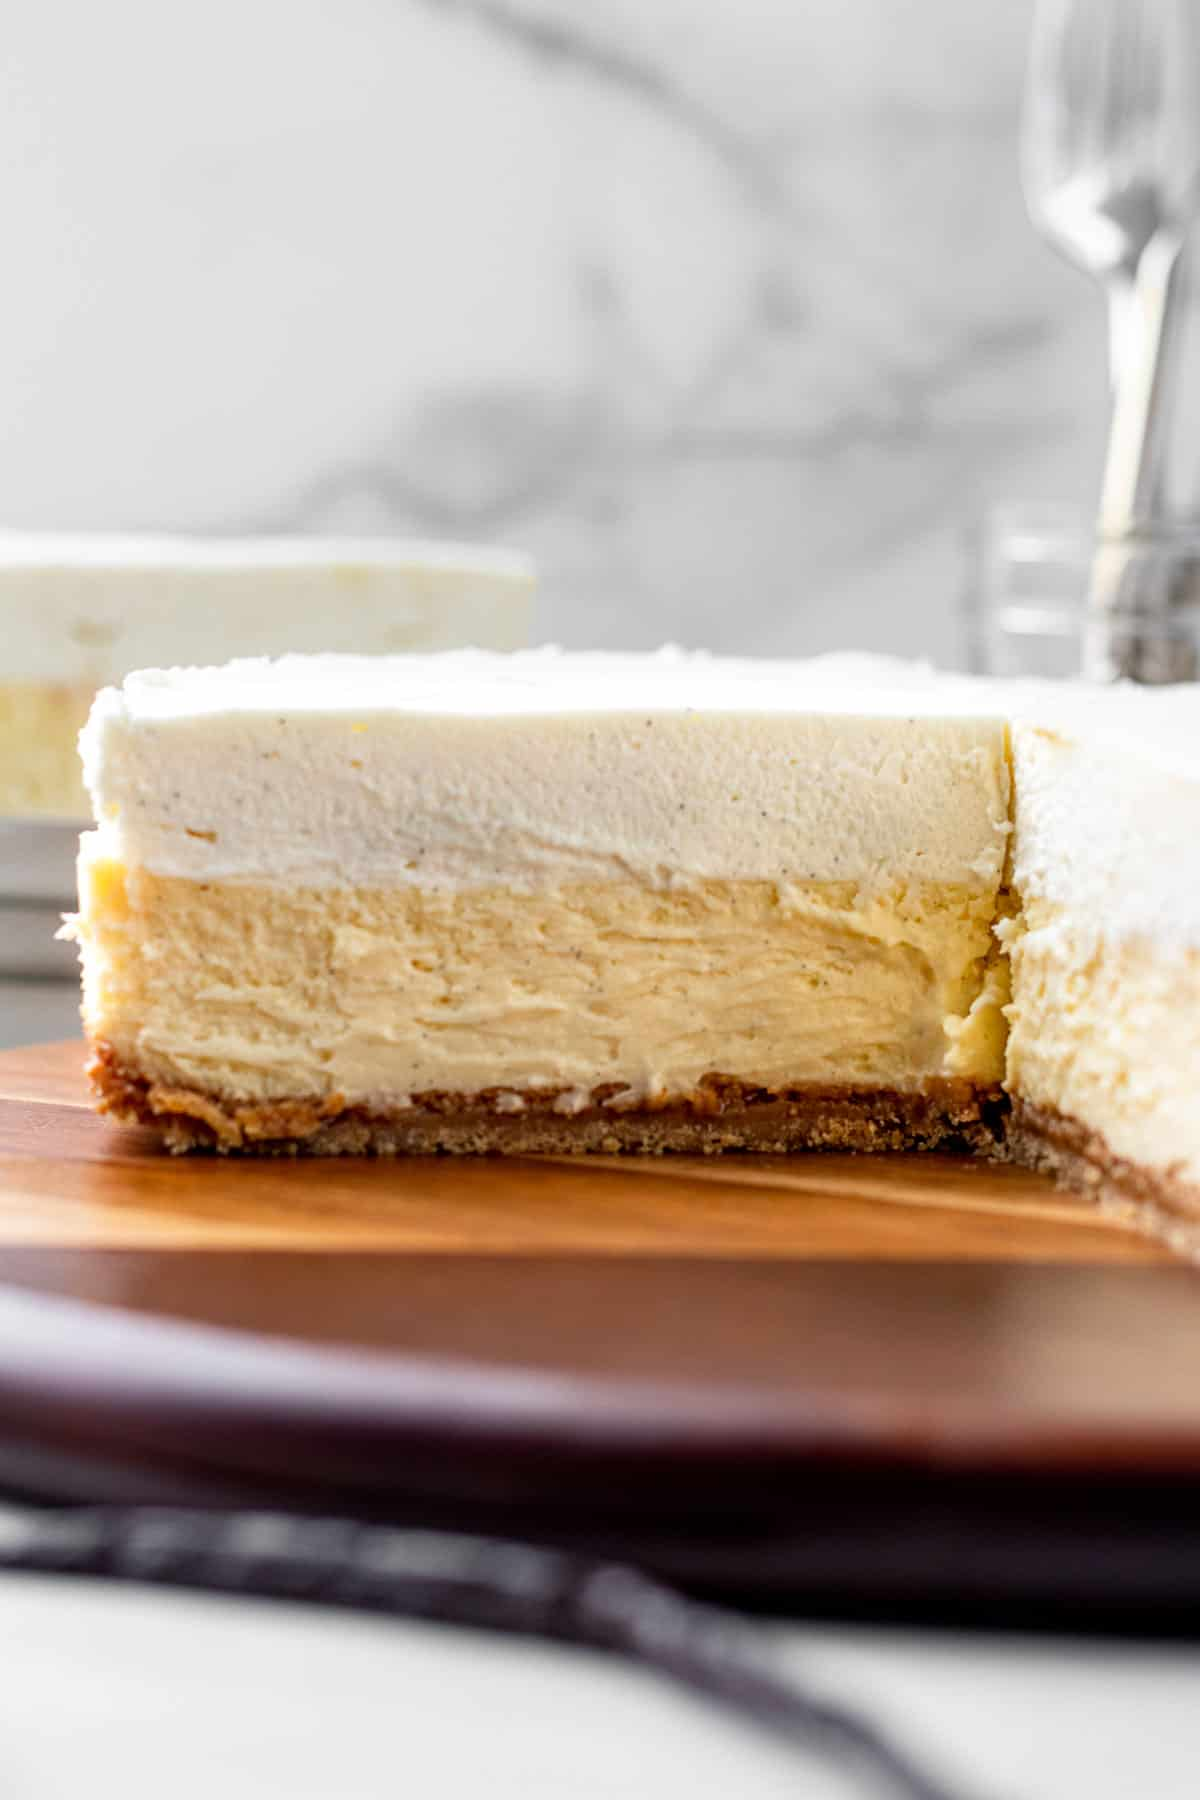 vanilla bean cheesecake sitting on wooden board showing layers of cheesecake and white chocolate mousse